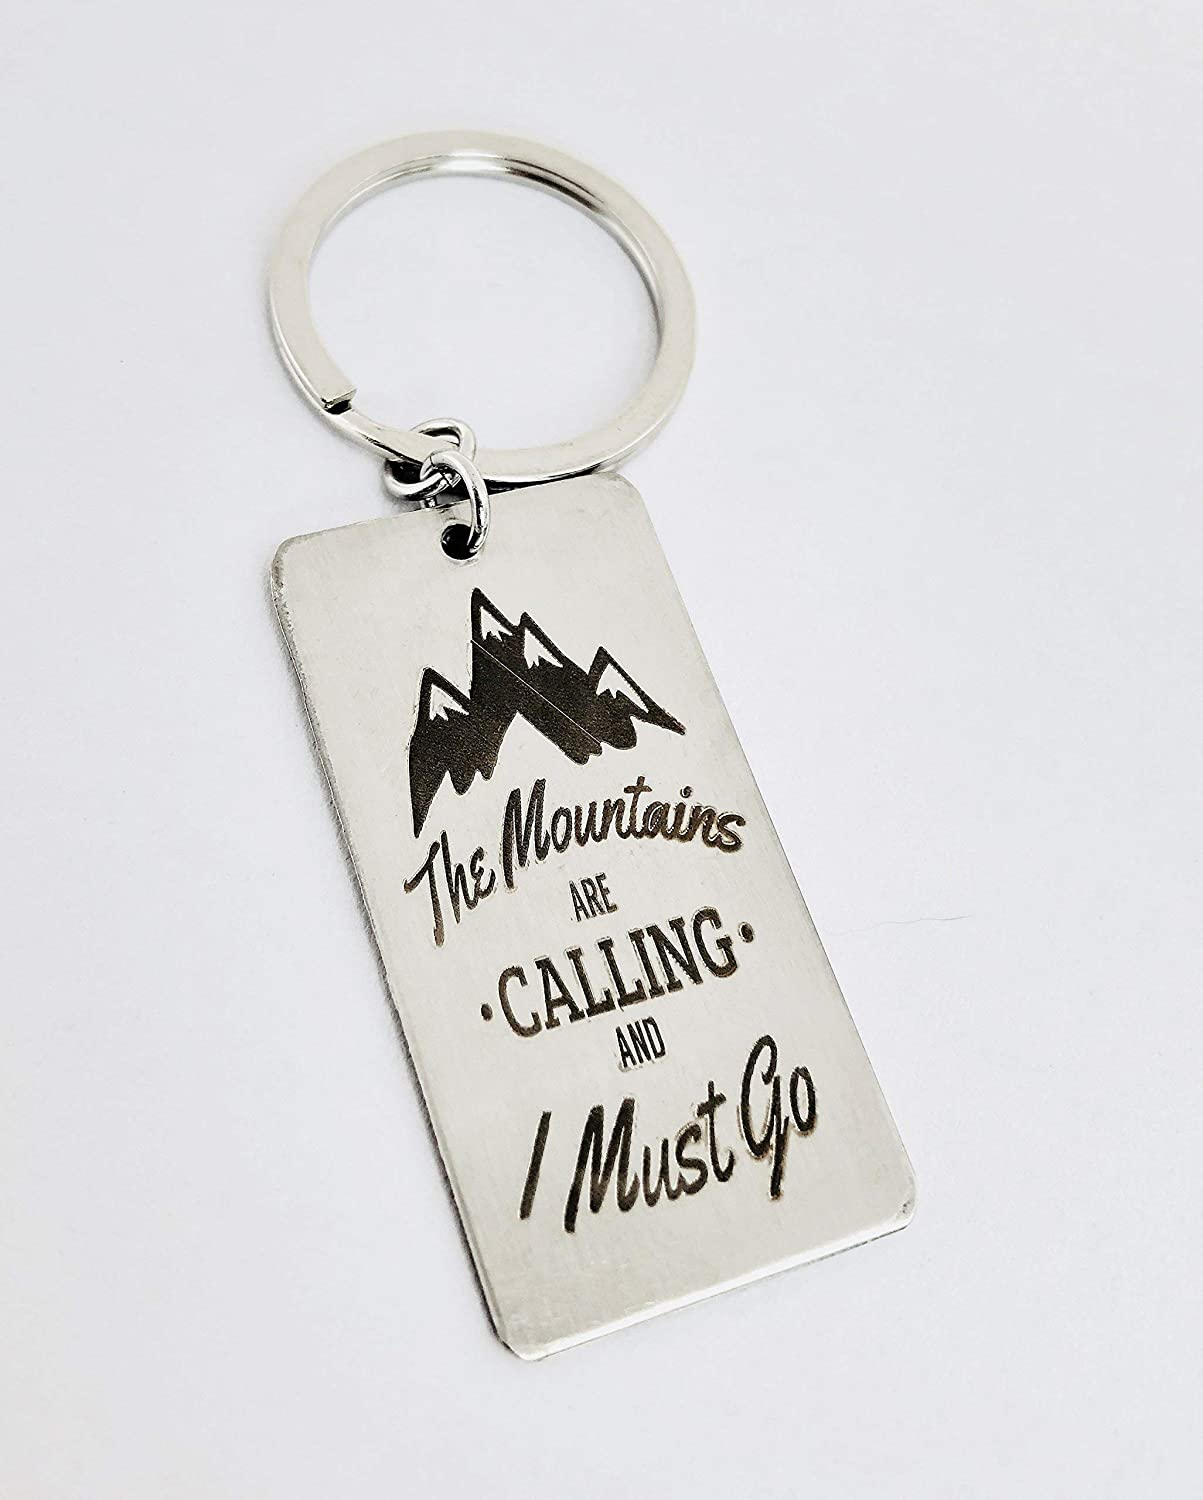 Colorado Keychain Adventure Hiking Gift Mountain Range Stamped Penny Keychain The Mountains Are Calling Hiker Keychain Mountain Gift